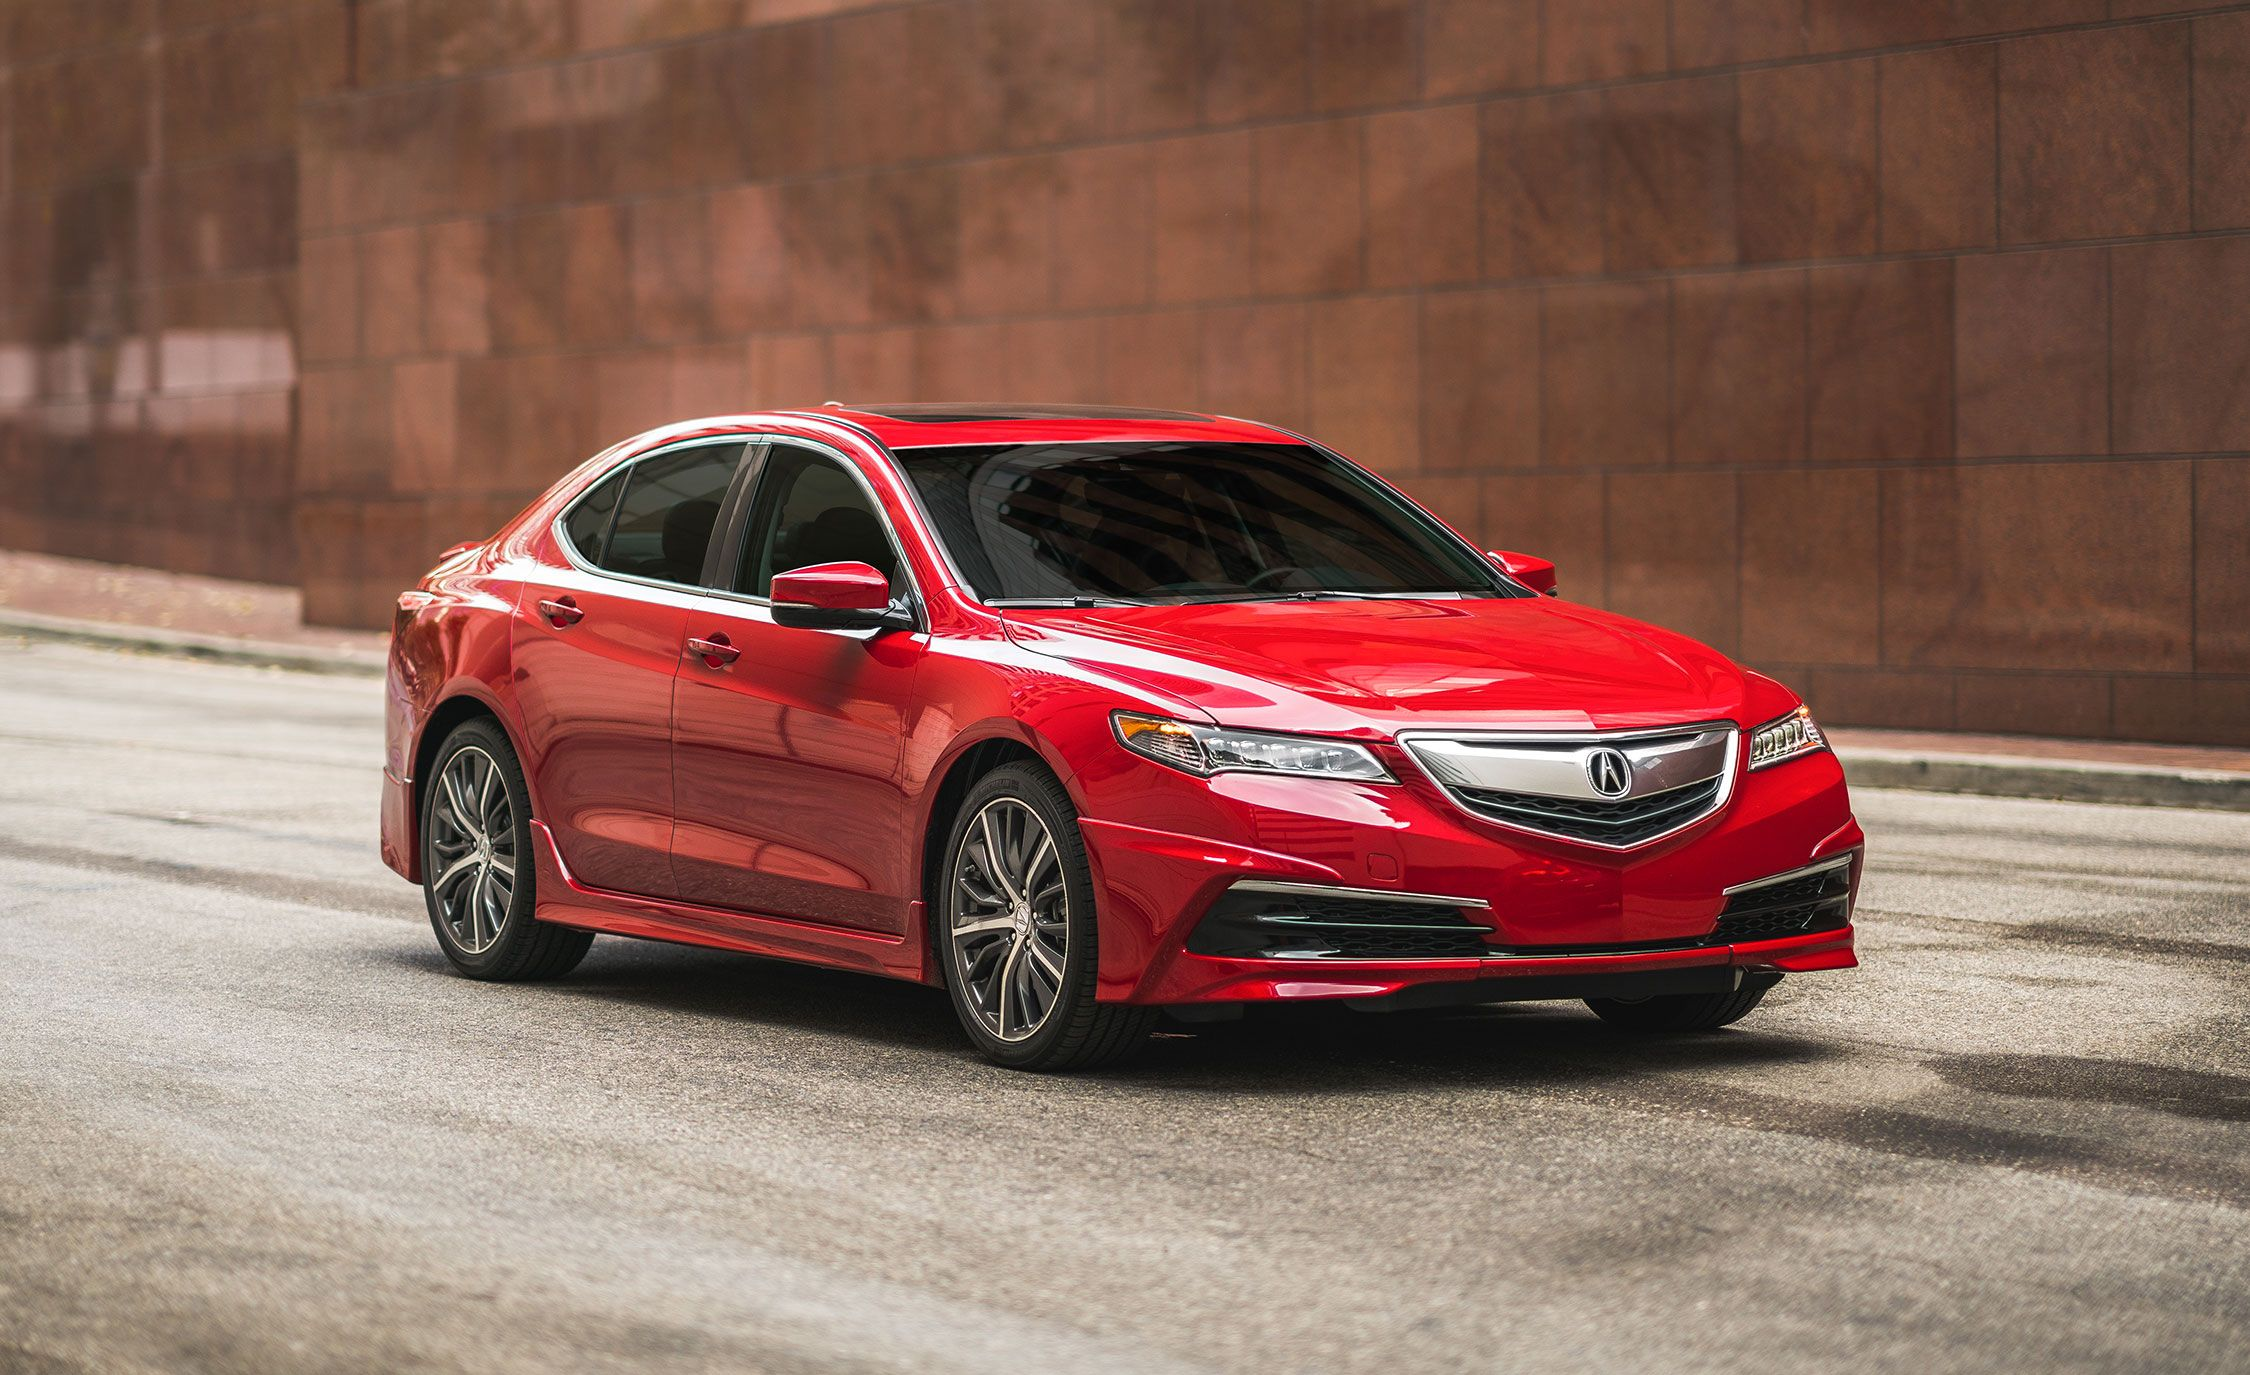 Acura S Race Inspired Tlx Gt Package Gets No Real Upgrades News Car And Driver